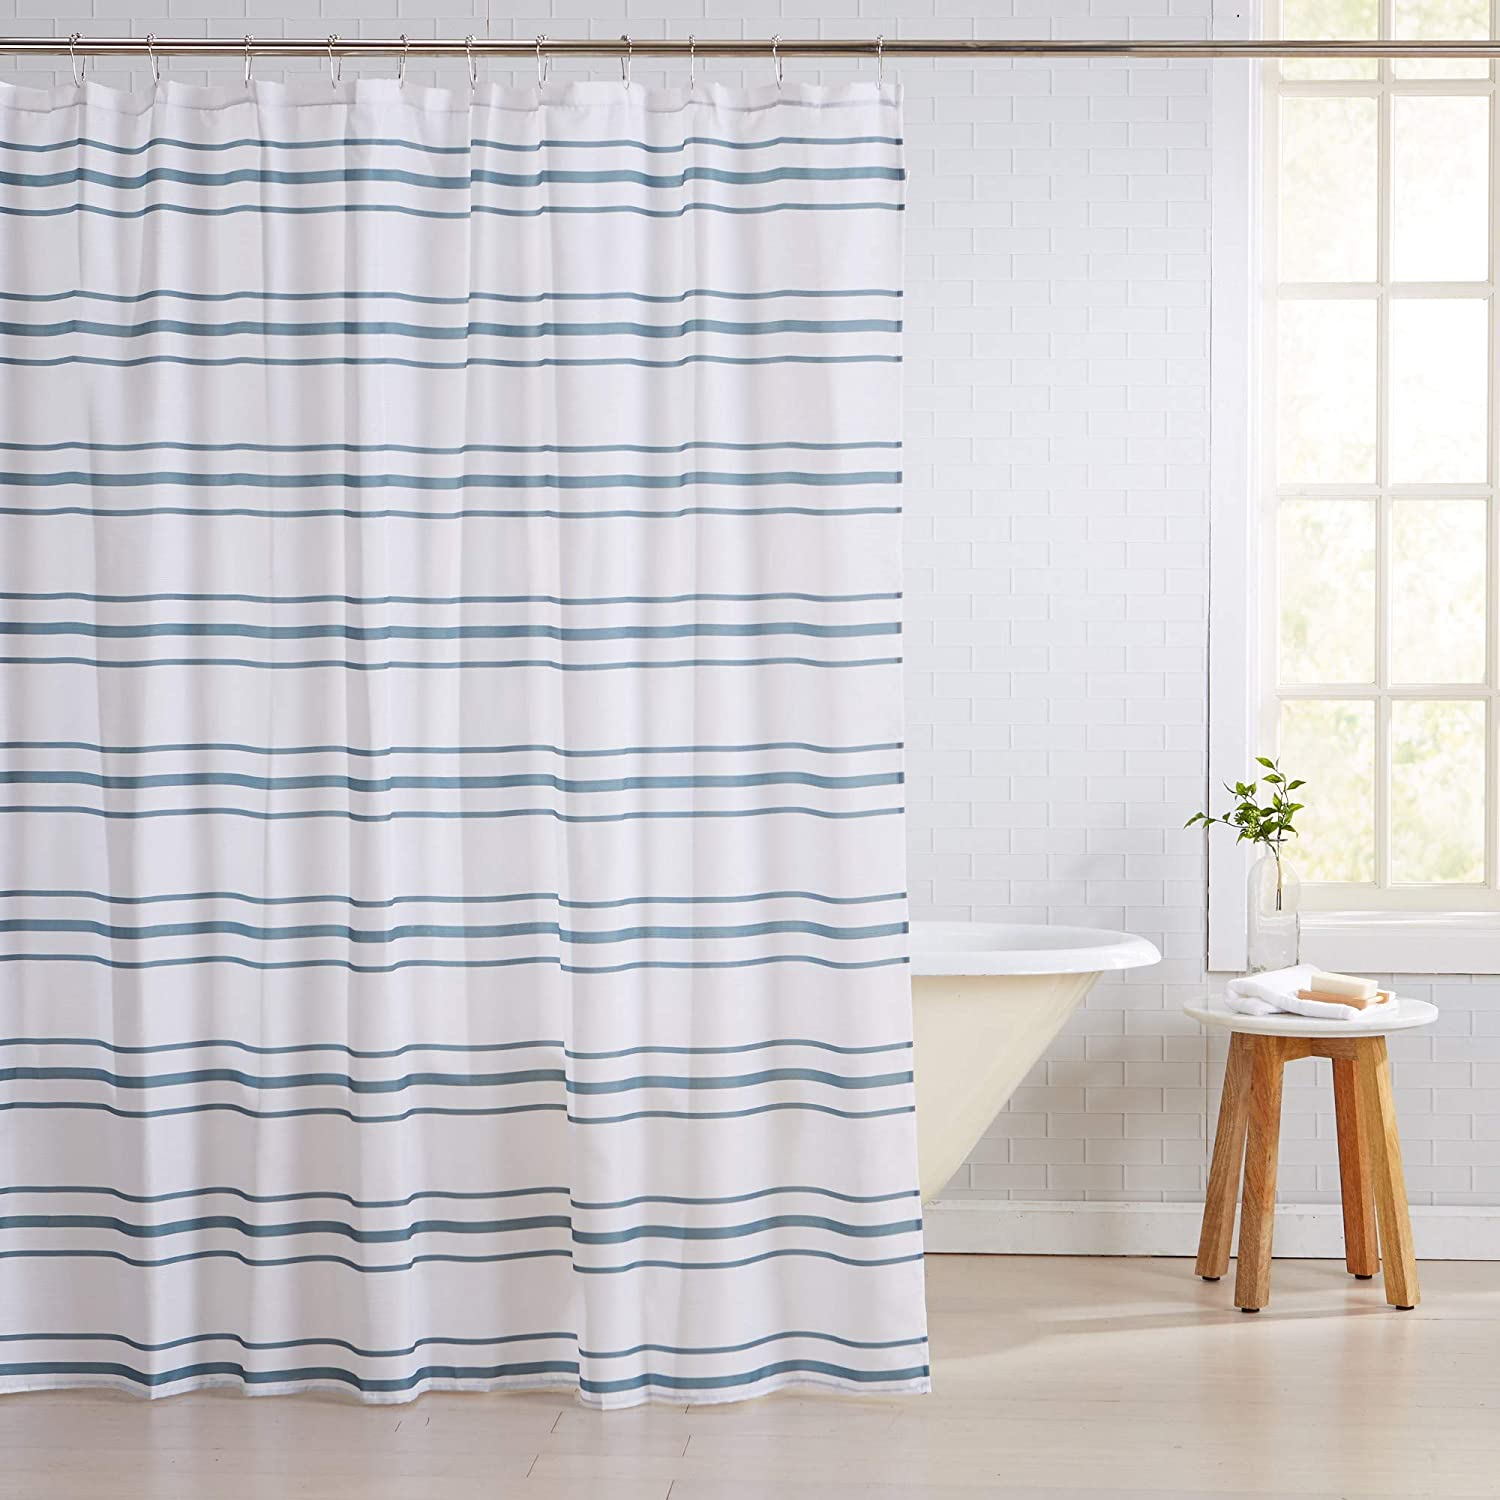 Great Bay Home Fabric Shower Curtain with 12 Roller Hooks. Mold and Mildew Resistant. Elsie Collection. 72-Inch, Tri Stripe - Blue